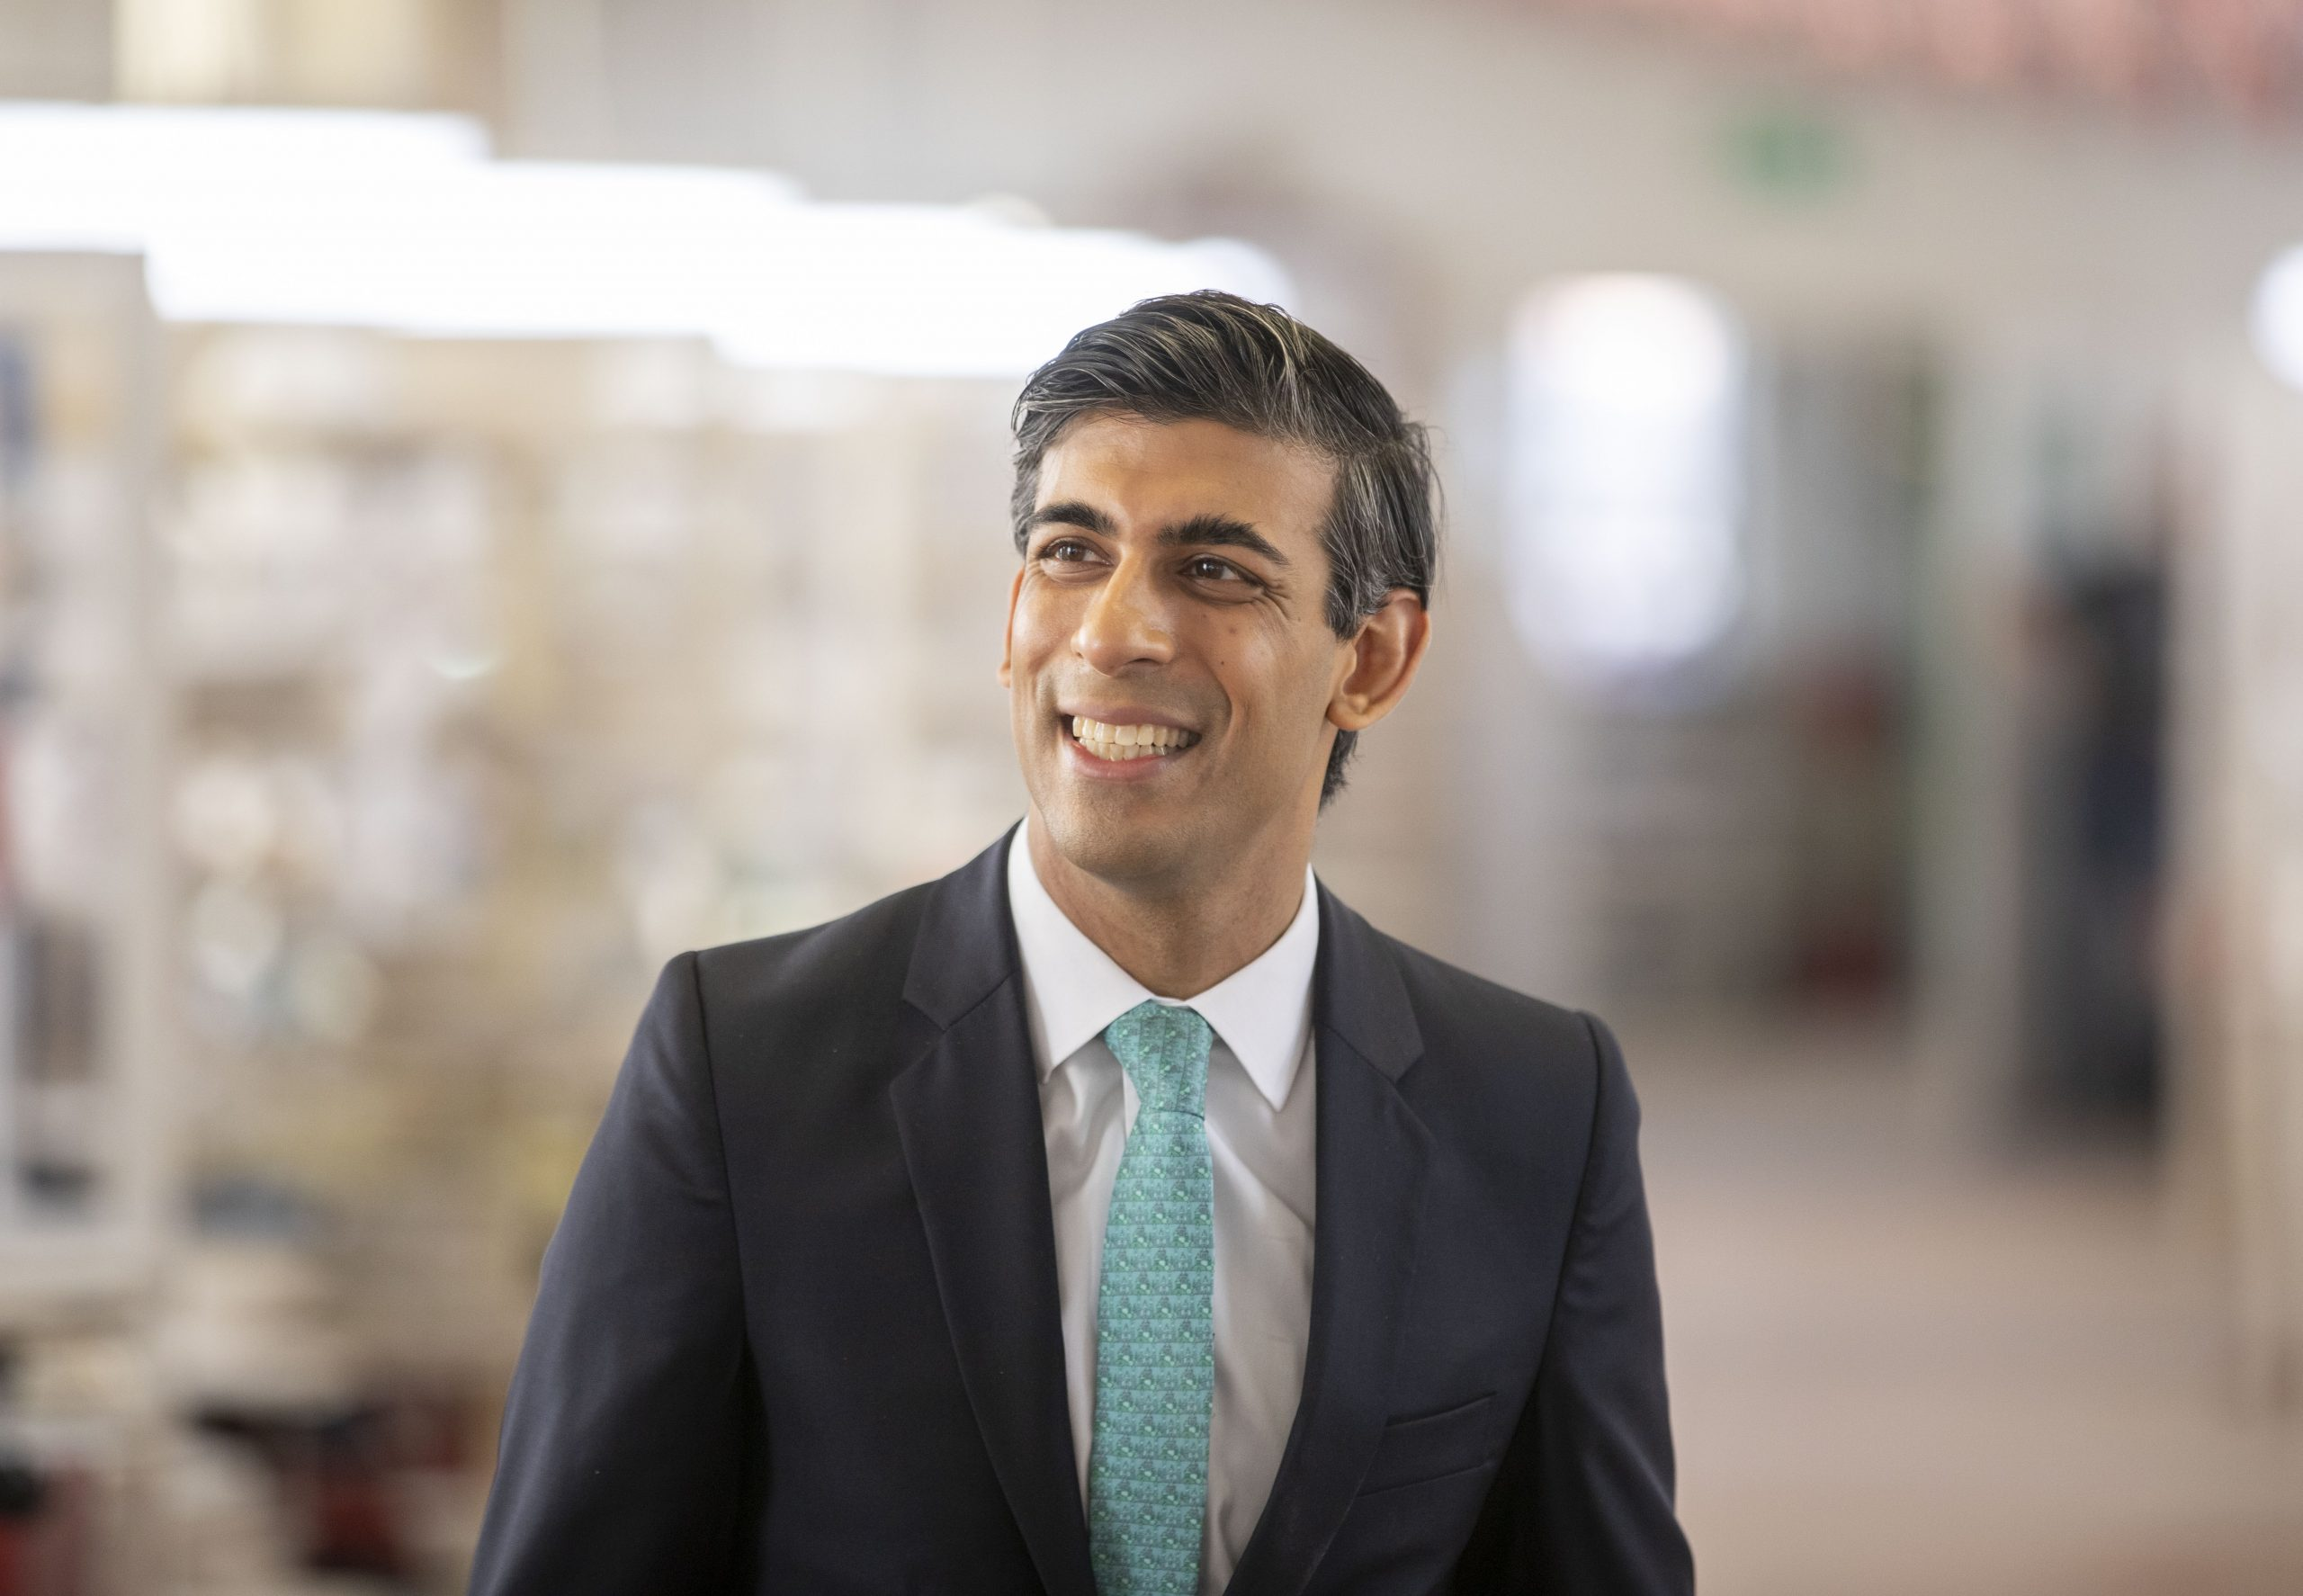 Britain's Chancellor of the Exchequer Rishi Sunak reacts during his  visit to the Emma Bridgewater pottery in Stoke-upon-Trent, central England, on September 14, 2020, where employees have returned to work after being furloughed due to the COVID-19 pandemic. - Britian's government has been paying up to 80 percent of wages for almost ten million workers under its furlough scheme. (Photo by Andrew Fox / POOL / AFP) (Photo by ANDREW FOX/POOL/AFP via Getty Images)